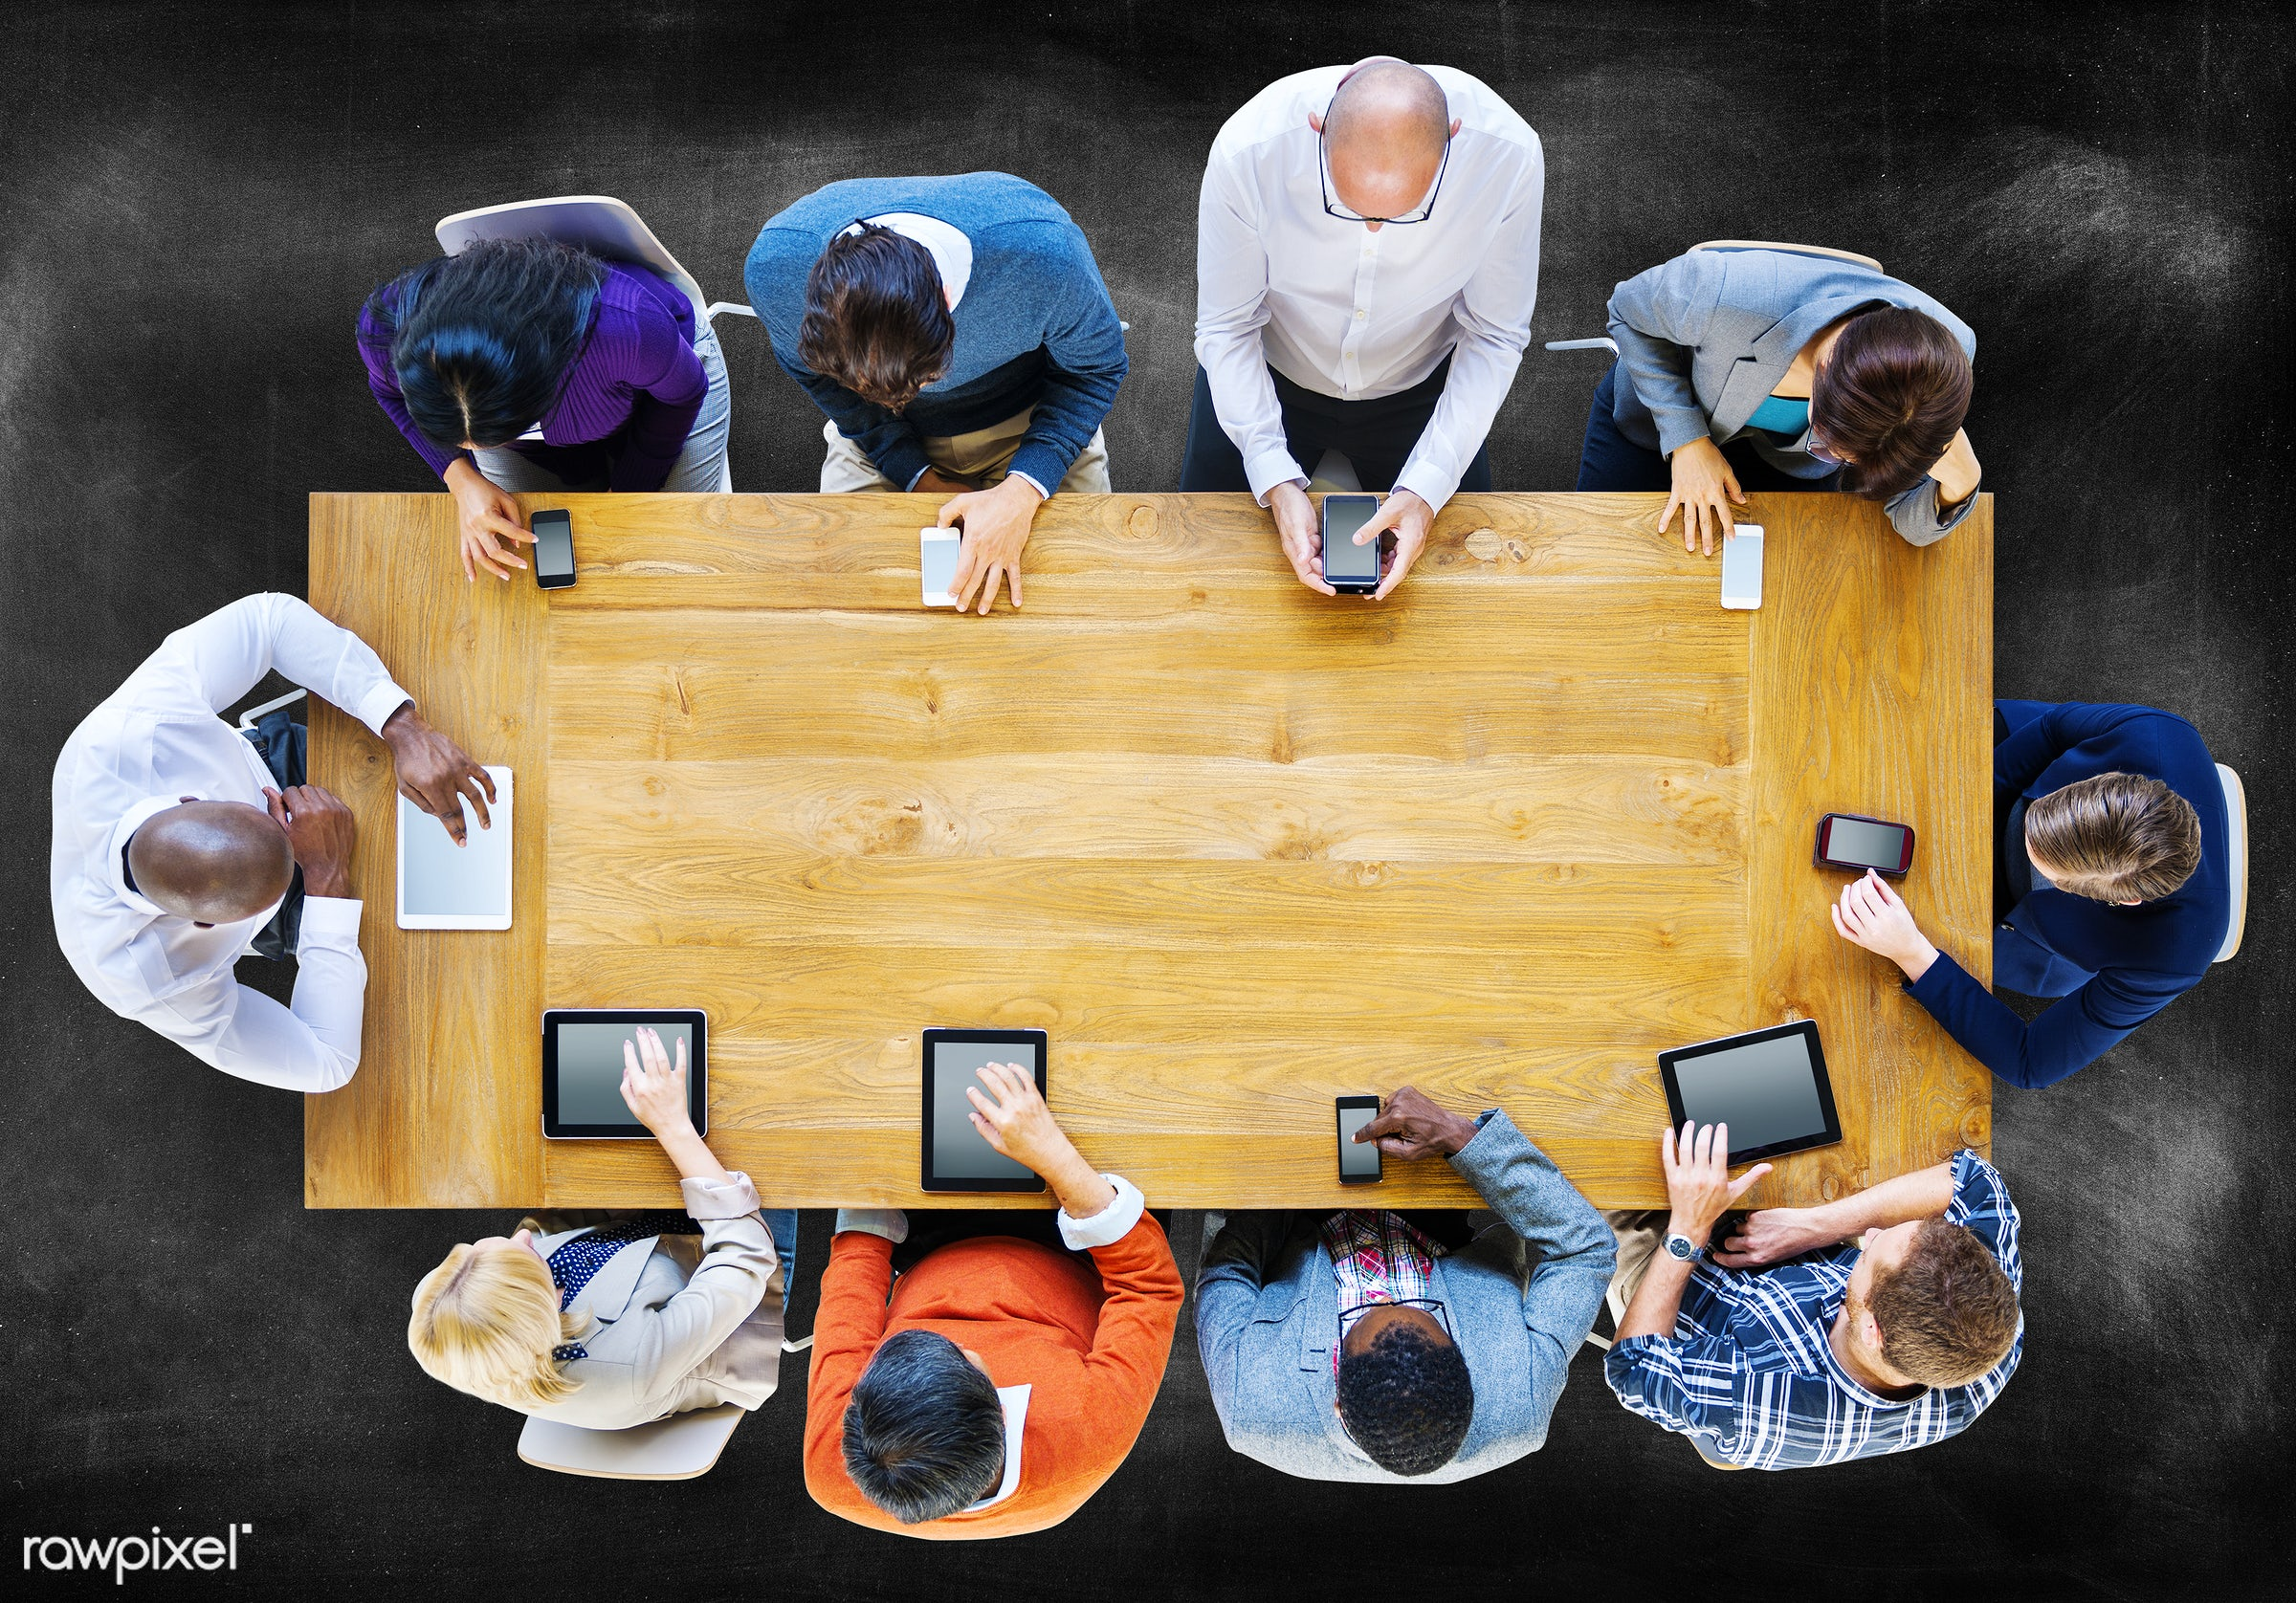 mobility, aerial view, blackboard, board, brainstorming, business, business people, casual, communication, concrete floor,...